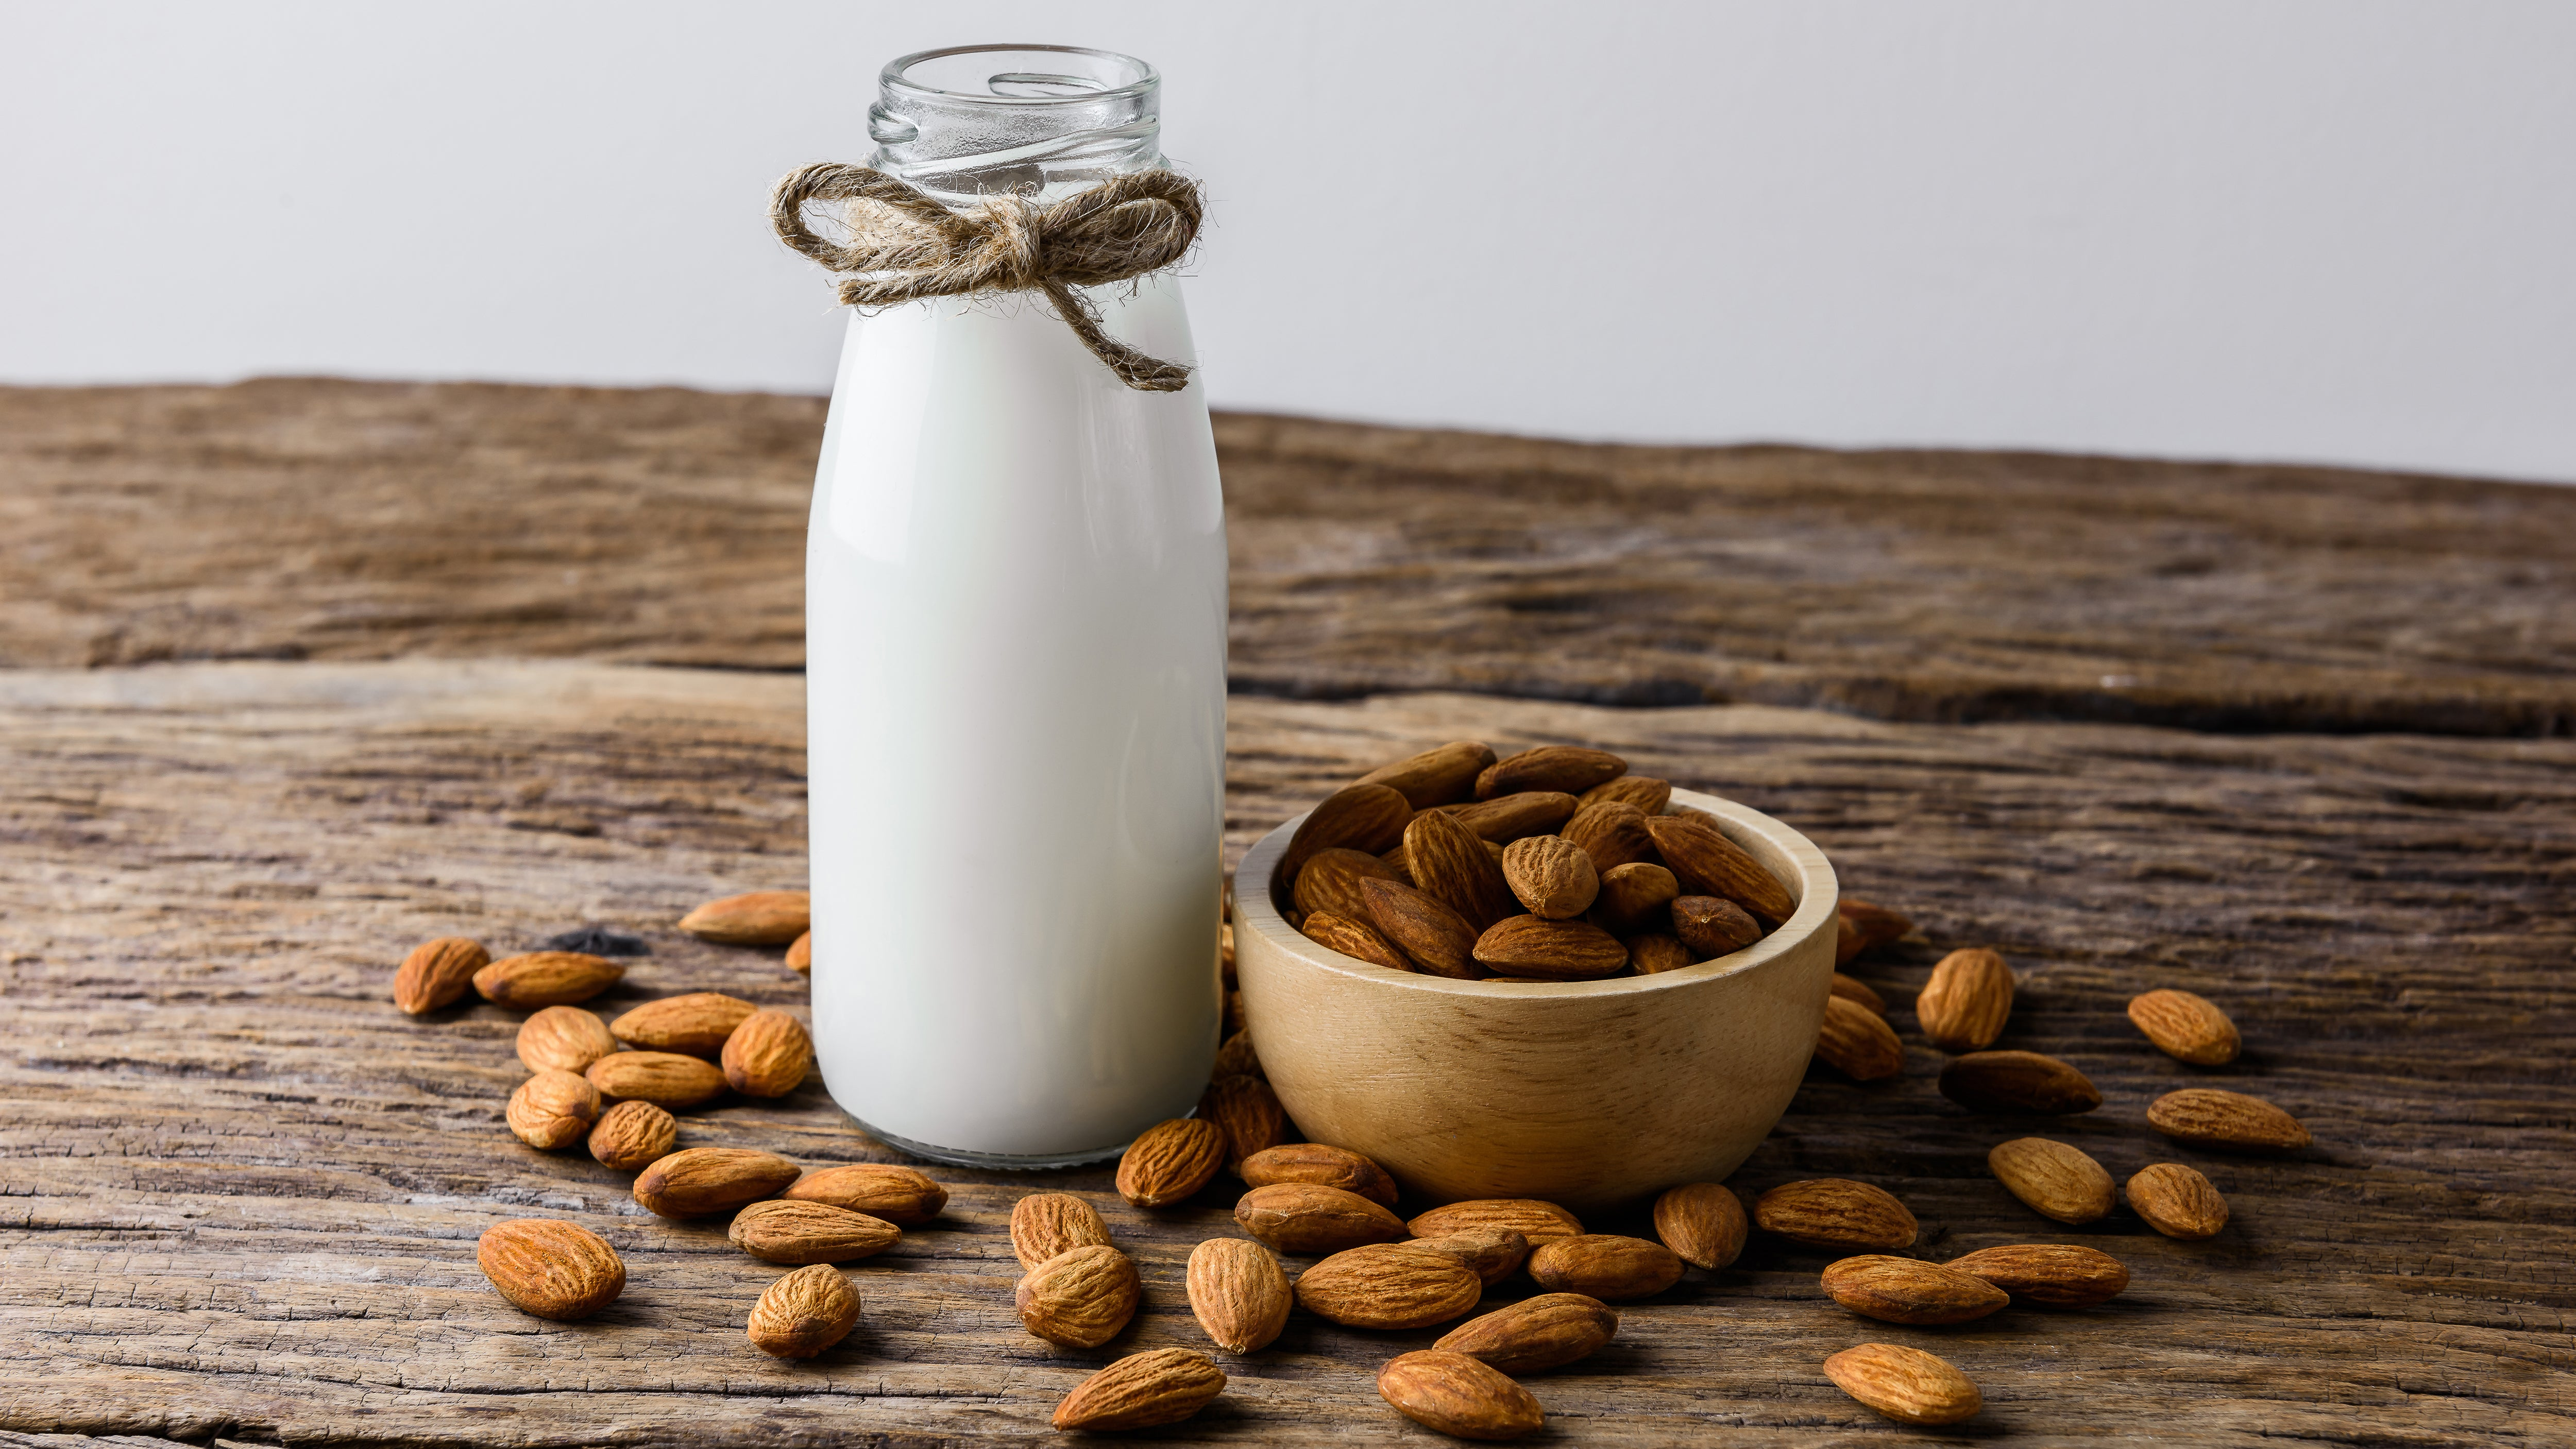 glass container filled with almond milk and a bowl of raw almonds